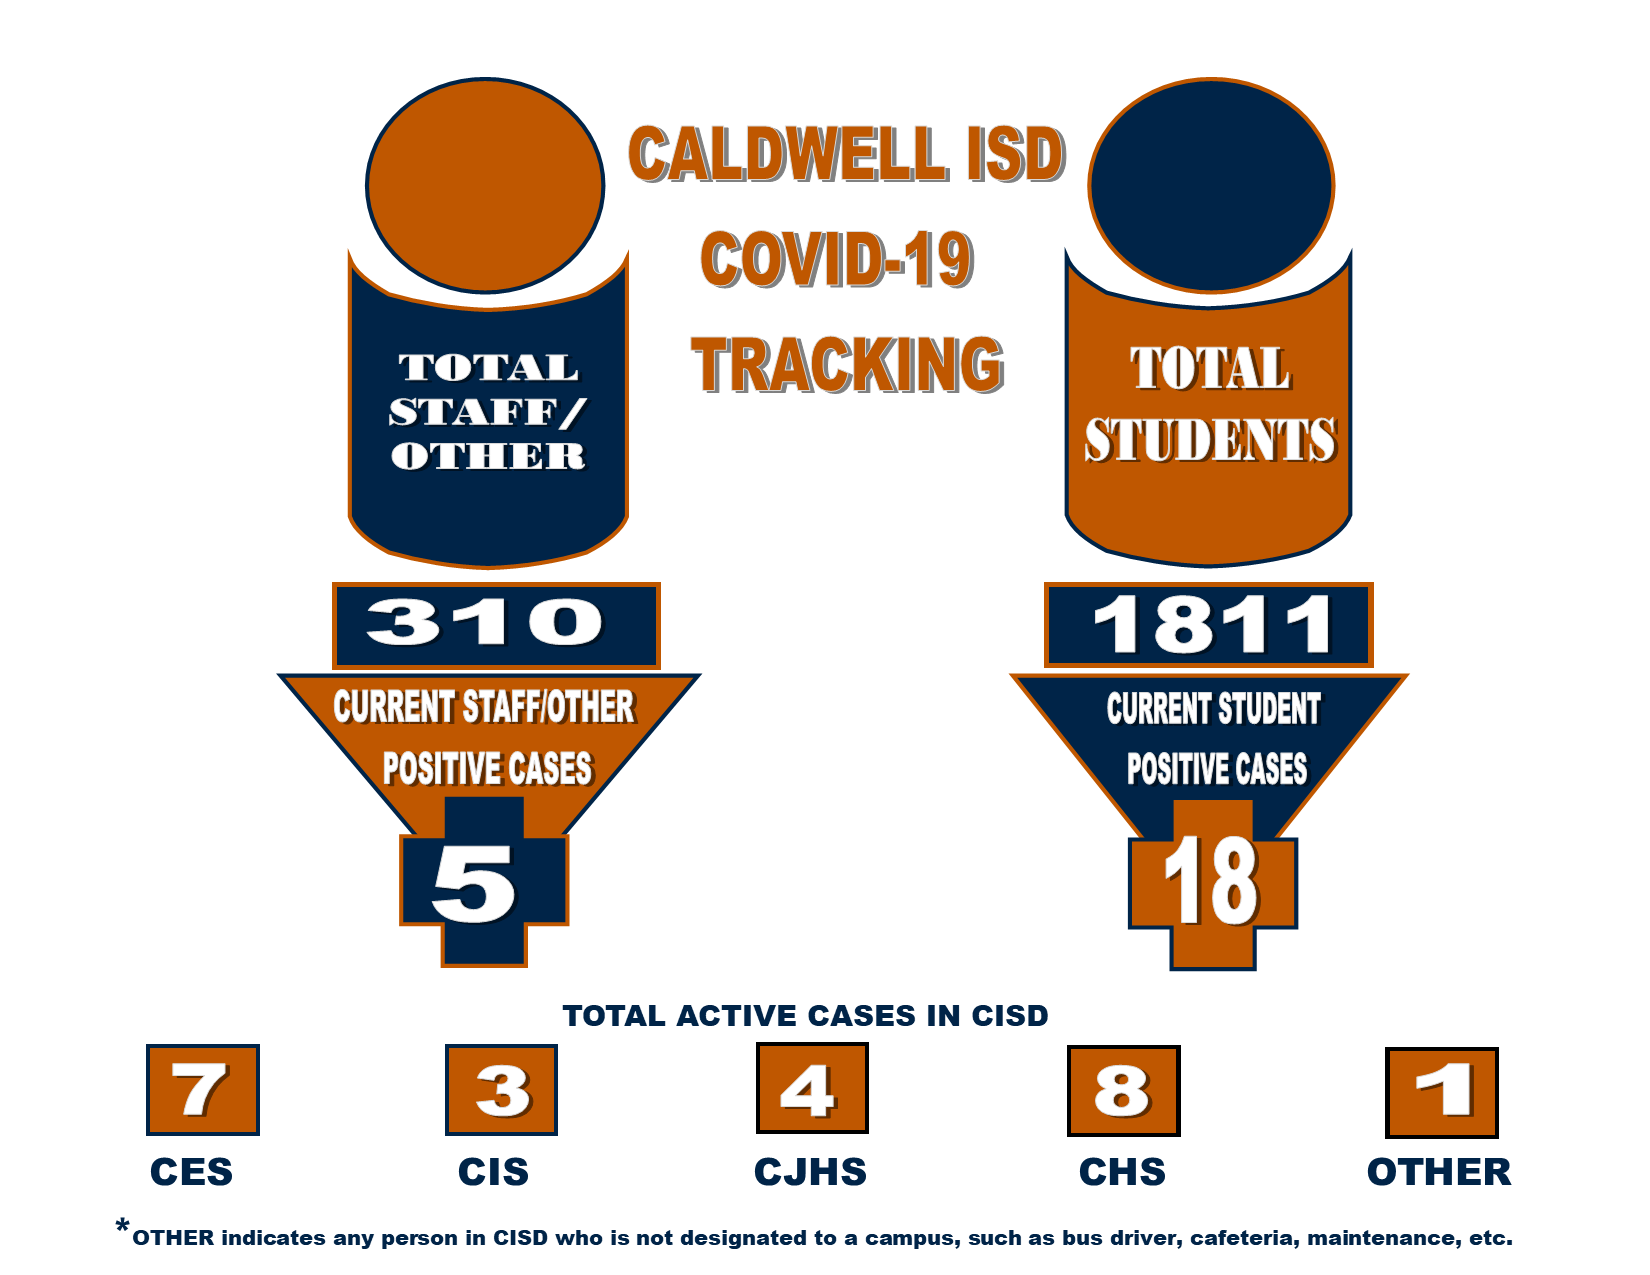 As of September 24, 2021 there are a total of 23active cases of COVID-19. Out of 310 employees, there are 5 active cases, and out of 1811 students, there are 18 actives cases. There are 7 at CES, 3 at CIS, 4 at CJHS, 8 at CHS, and 1 who not designated to a campus.